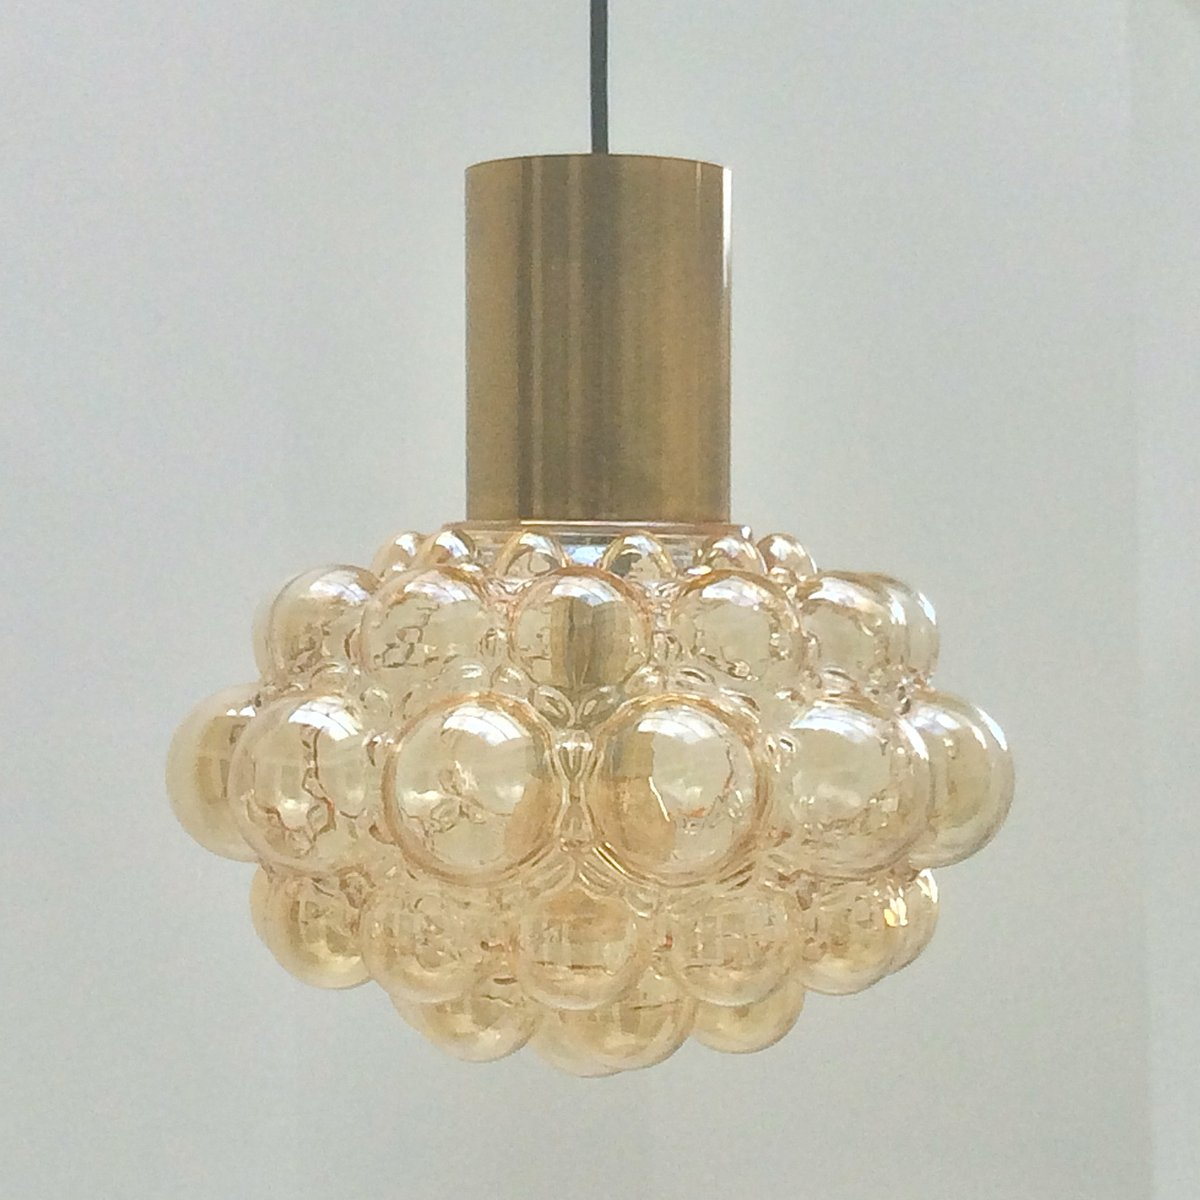 Vintage bubble light with brass by helena tynell for limburg for vintage bubble light with brass by helena tynell for limburg arubaitofo Image collections